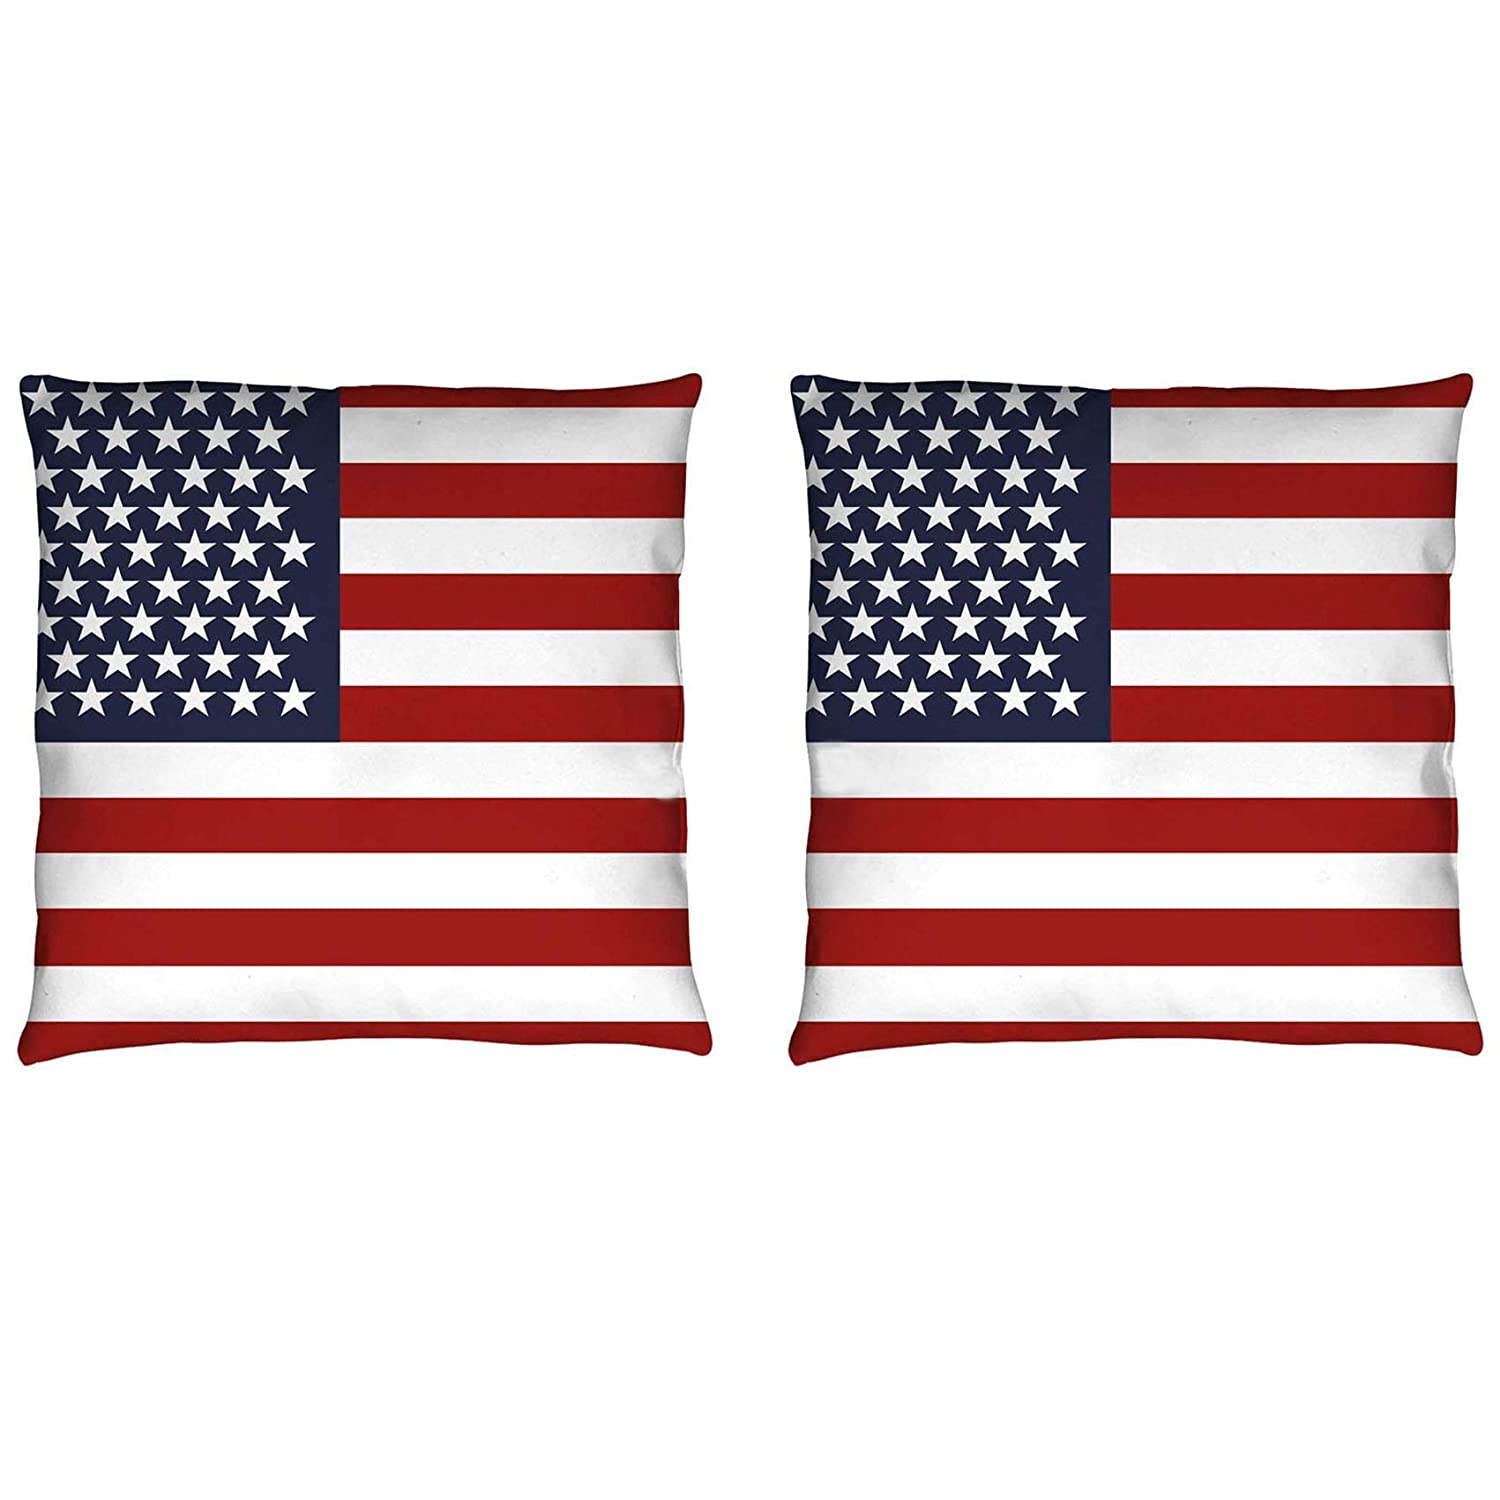 2 Pack UK Flag Pillow Cases 17 x 17 Inch Soft Velvet Pillow Cover Sofa Decorative hrow Pillow Protector Washable Cushion Case Printing(UK,No Pillow Insert) Newweic